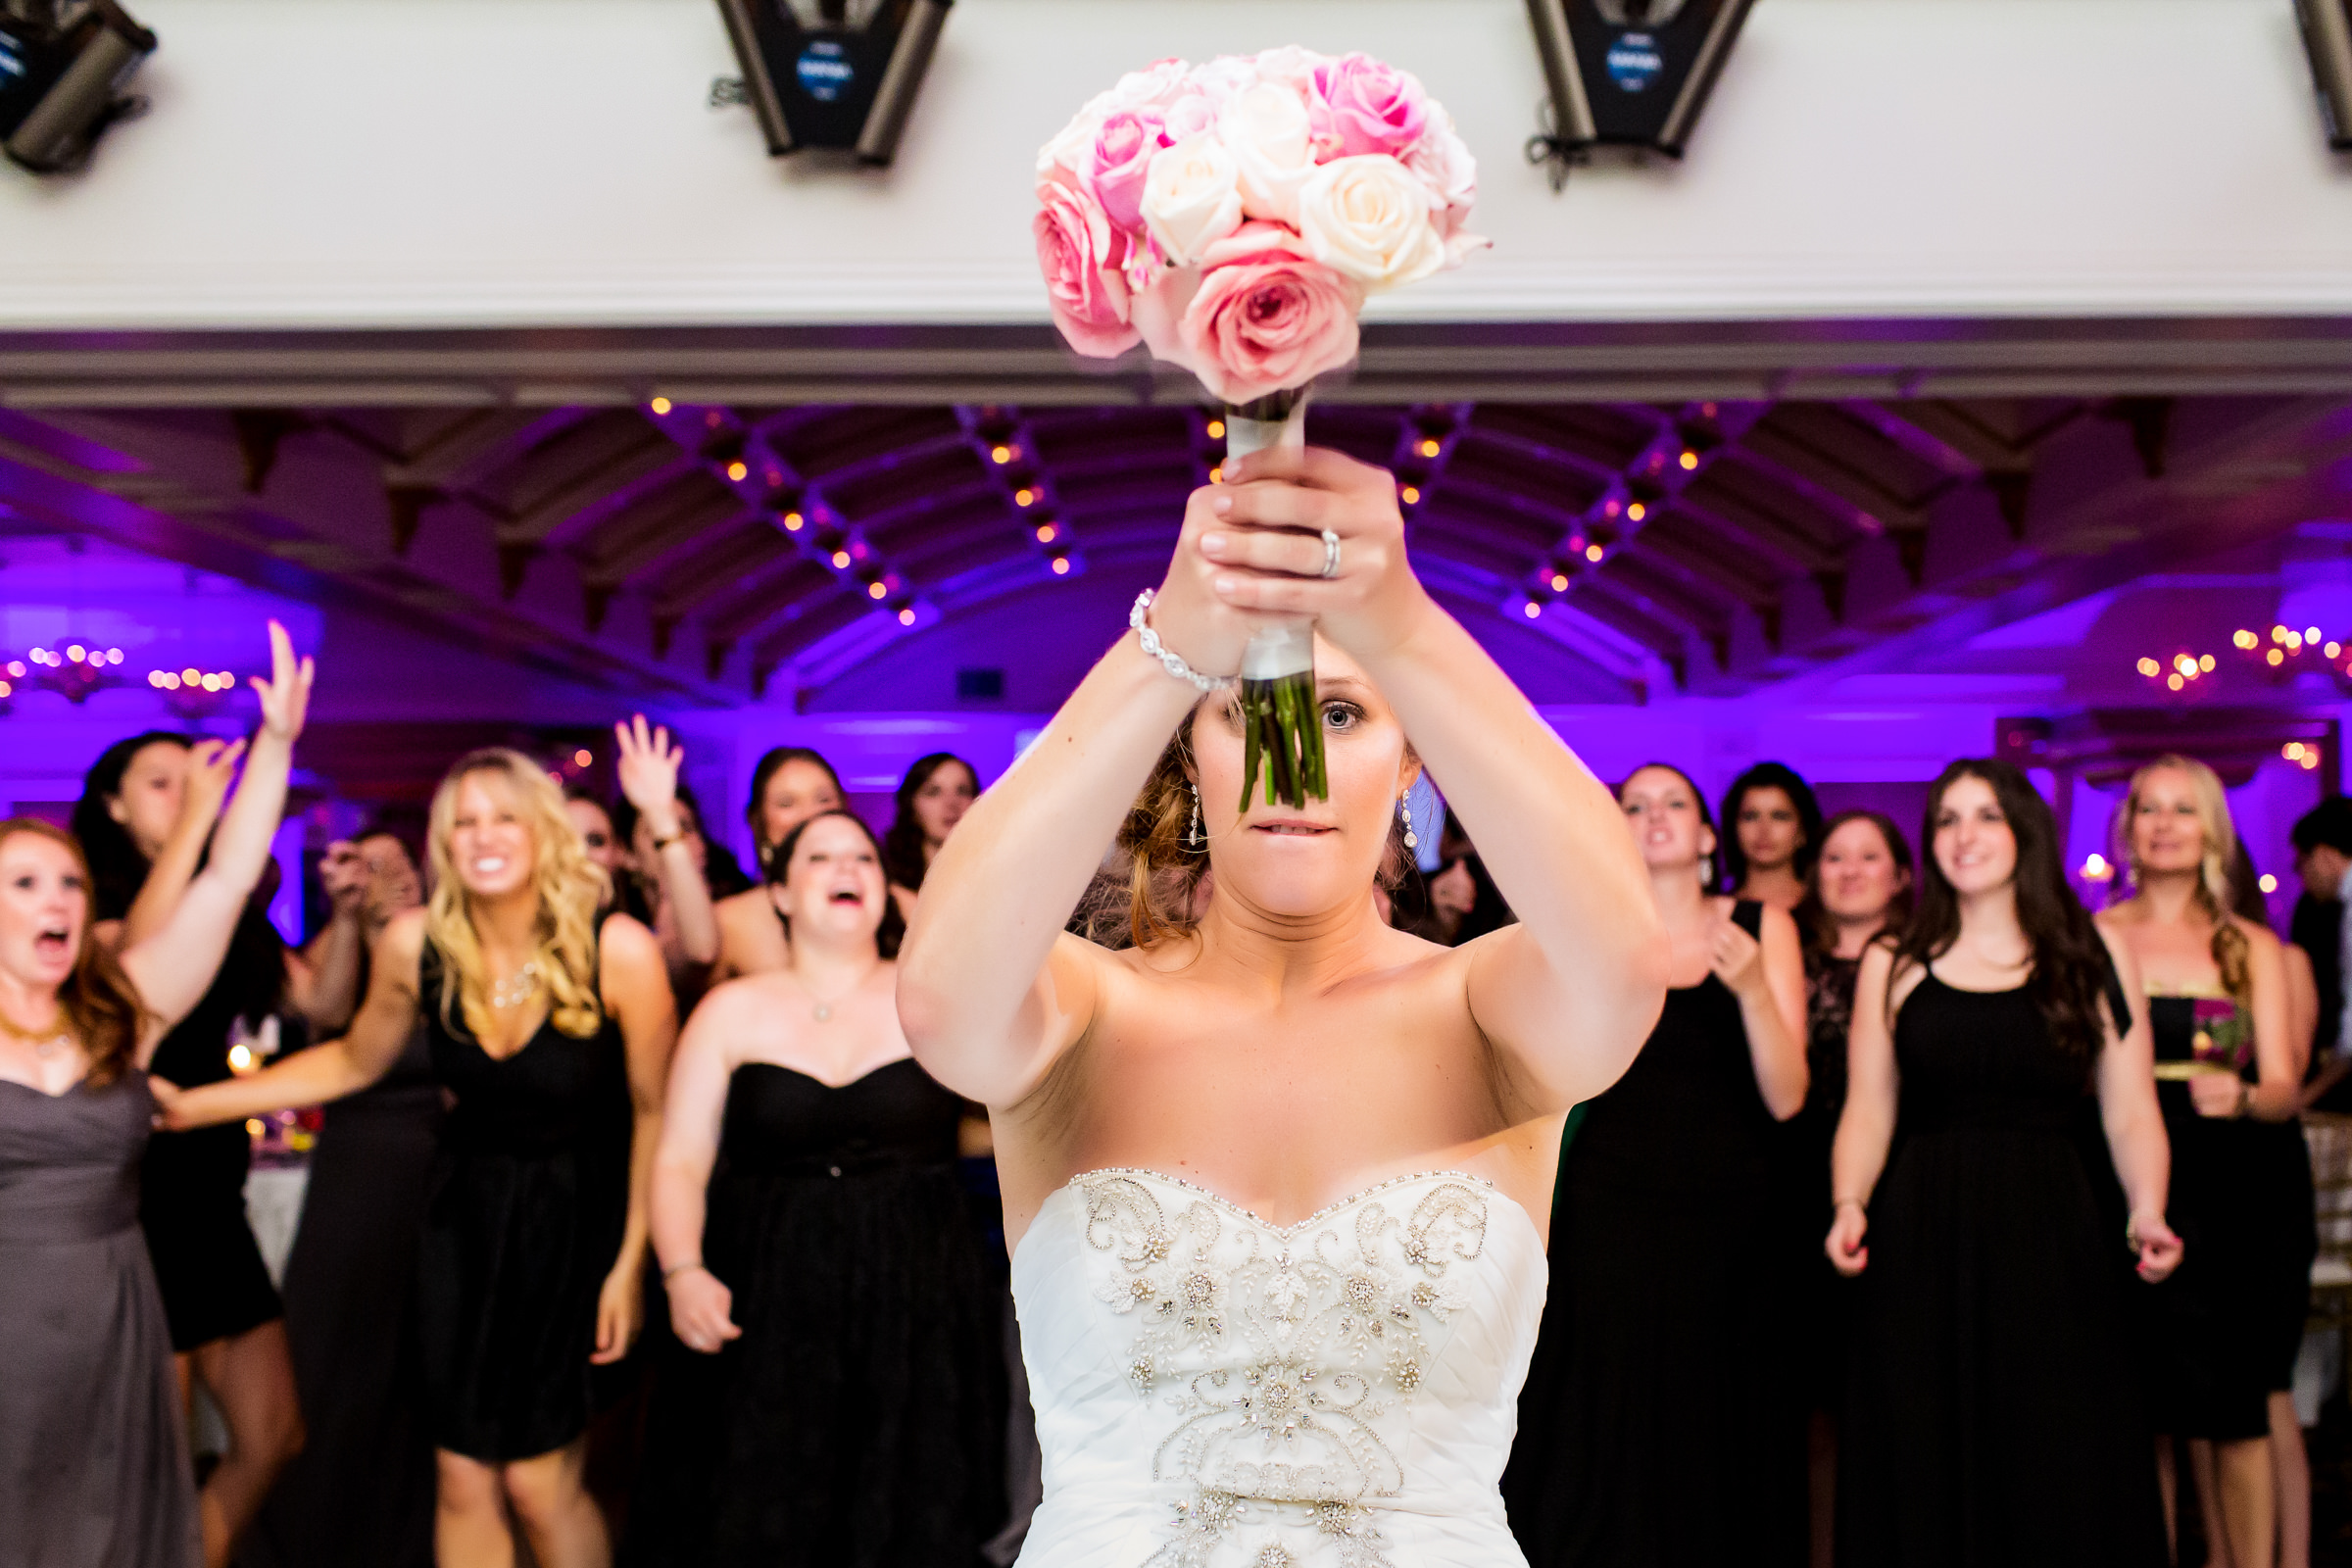 Bride about to toss the bouquet - photo by Procopio Photography